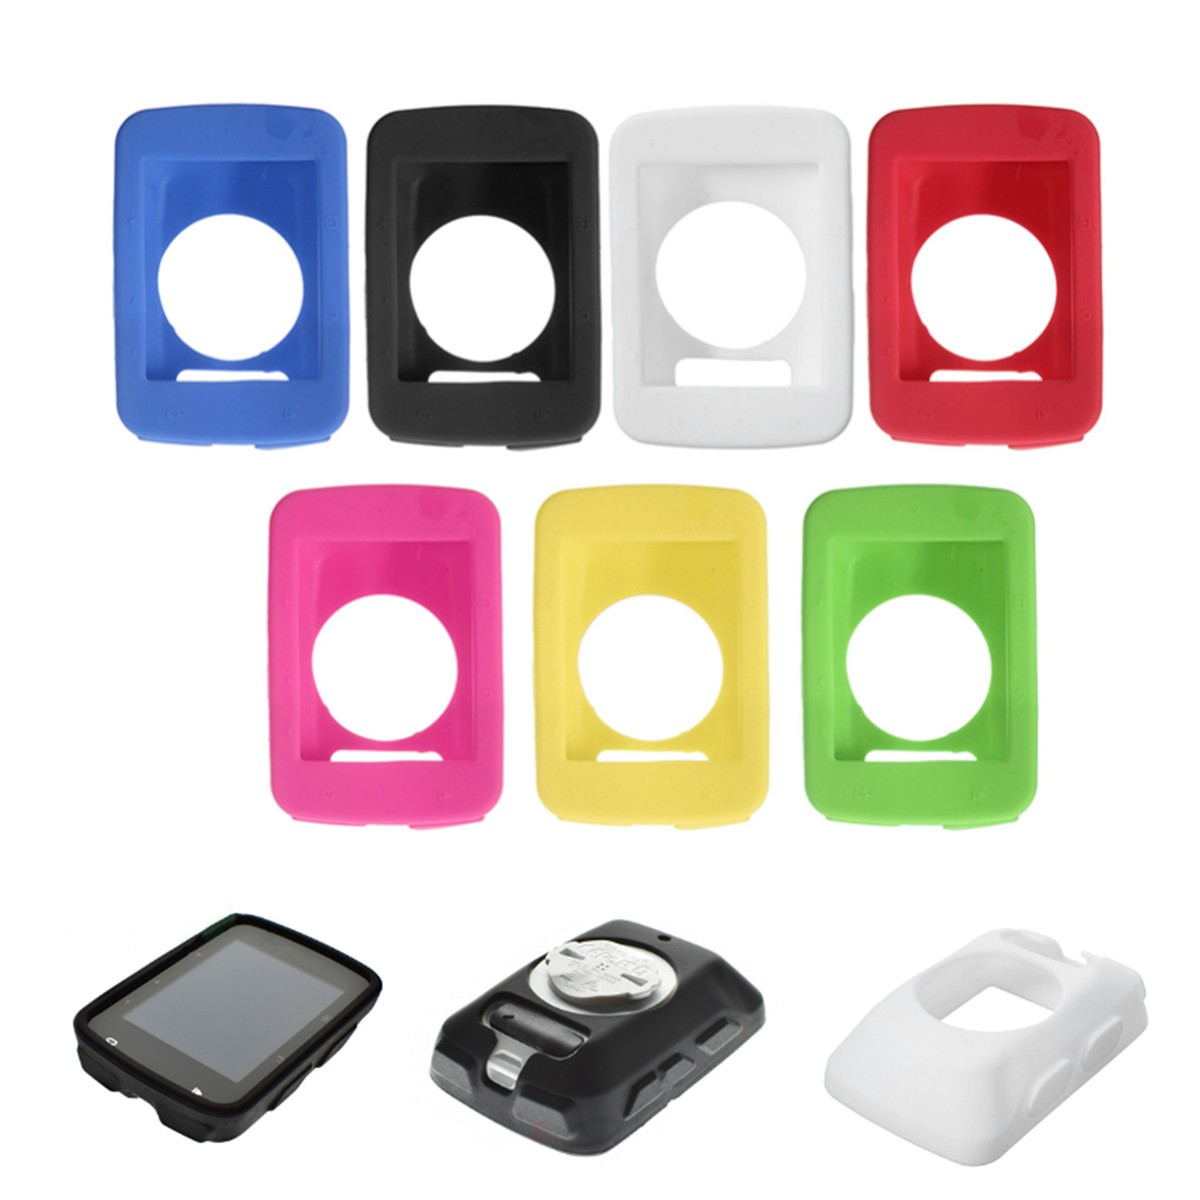 2.95x1.96inch Silicone Gel Skin Case Cover Fit for Garmin Edge 5